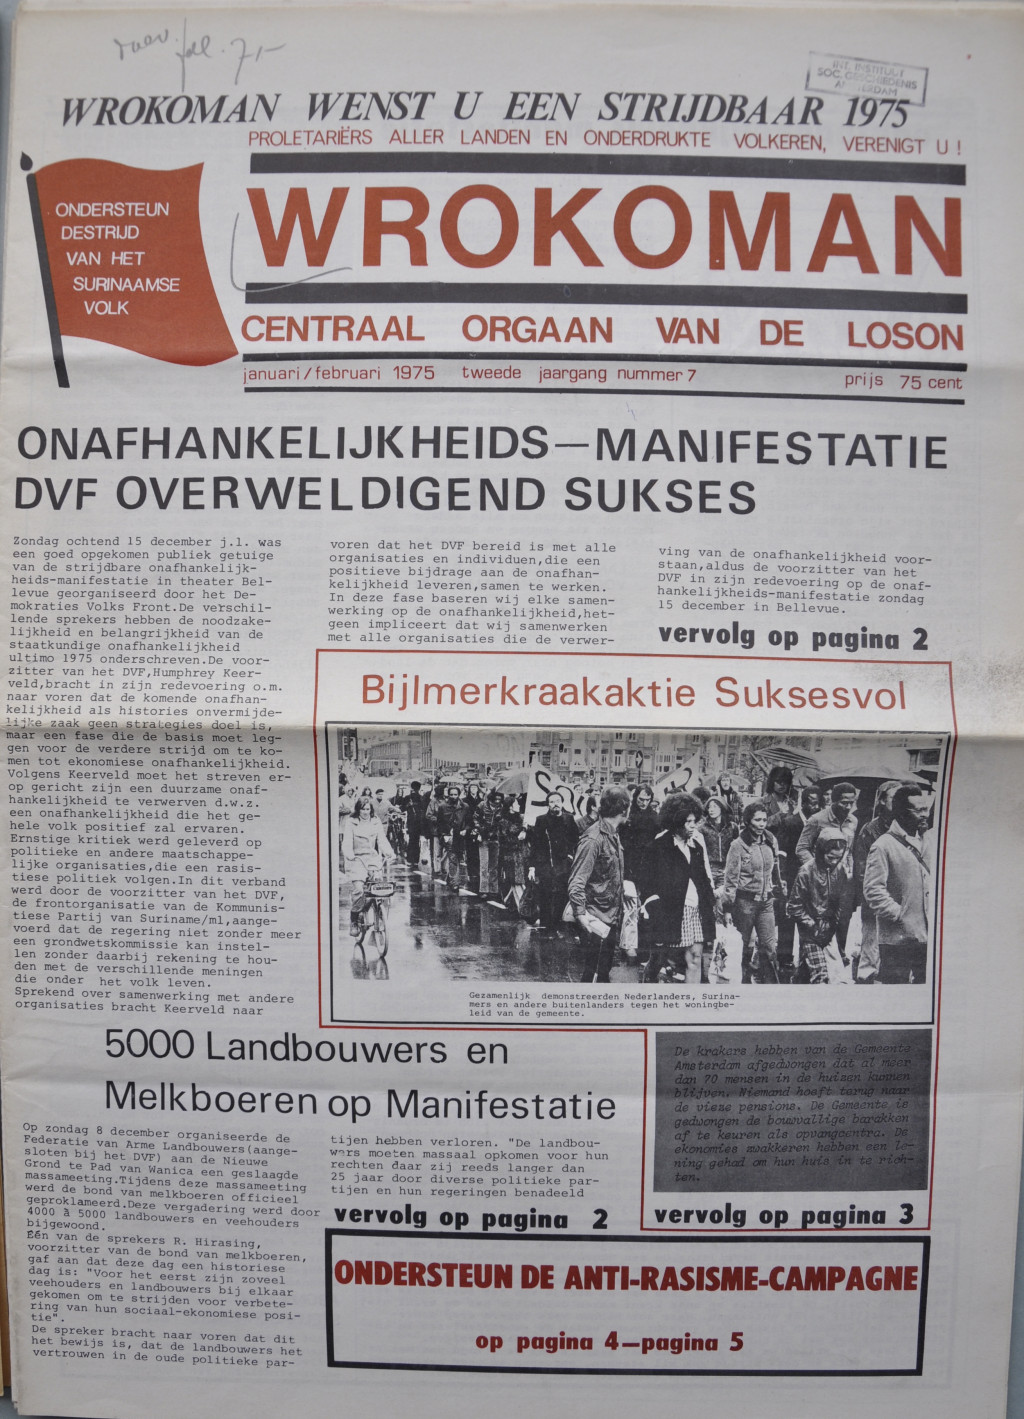 """From """"Wrokoman,"""" newspaper of the LOSON, January/February 1975."""